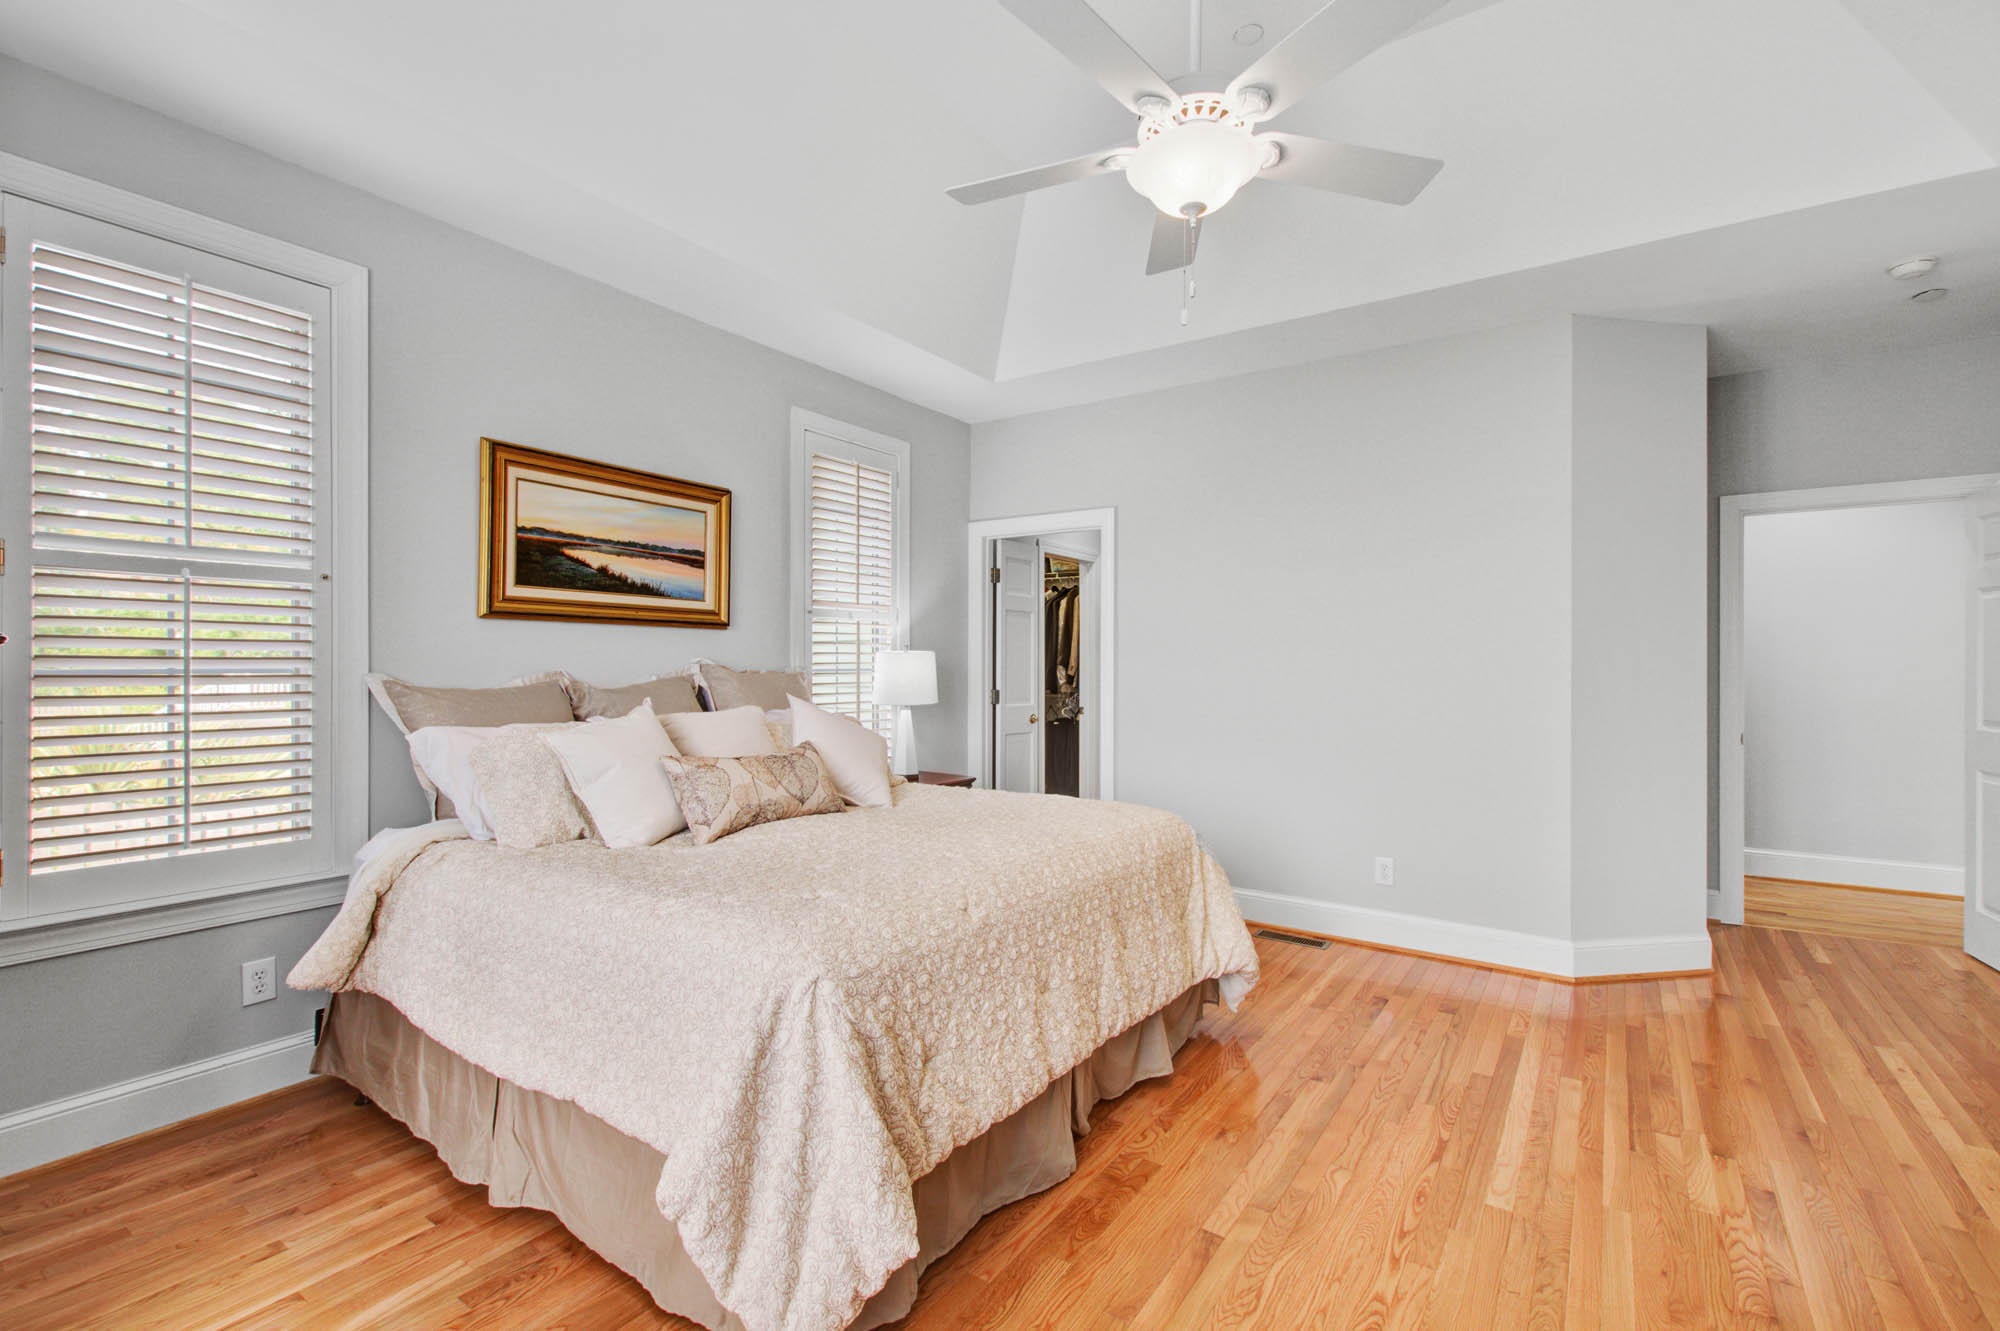 Dunes West Homes For Sale - 2069 Shell Ring, Mount Pleasant, SC - 38